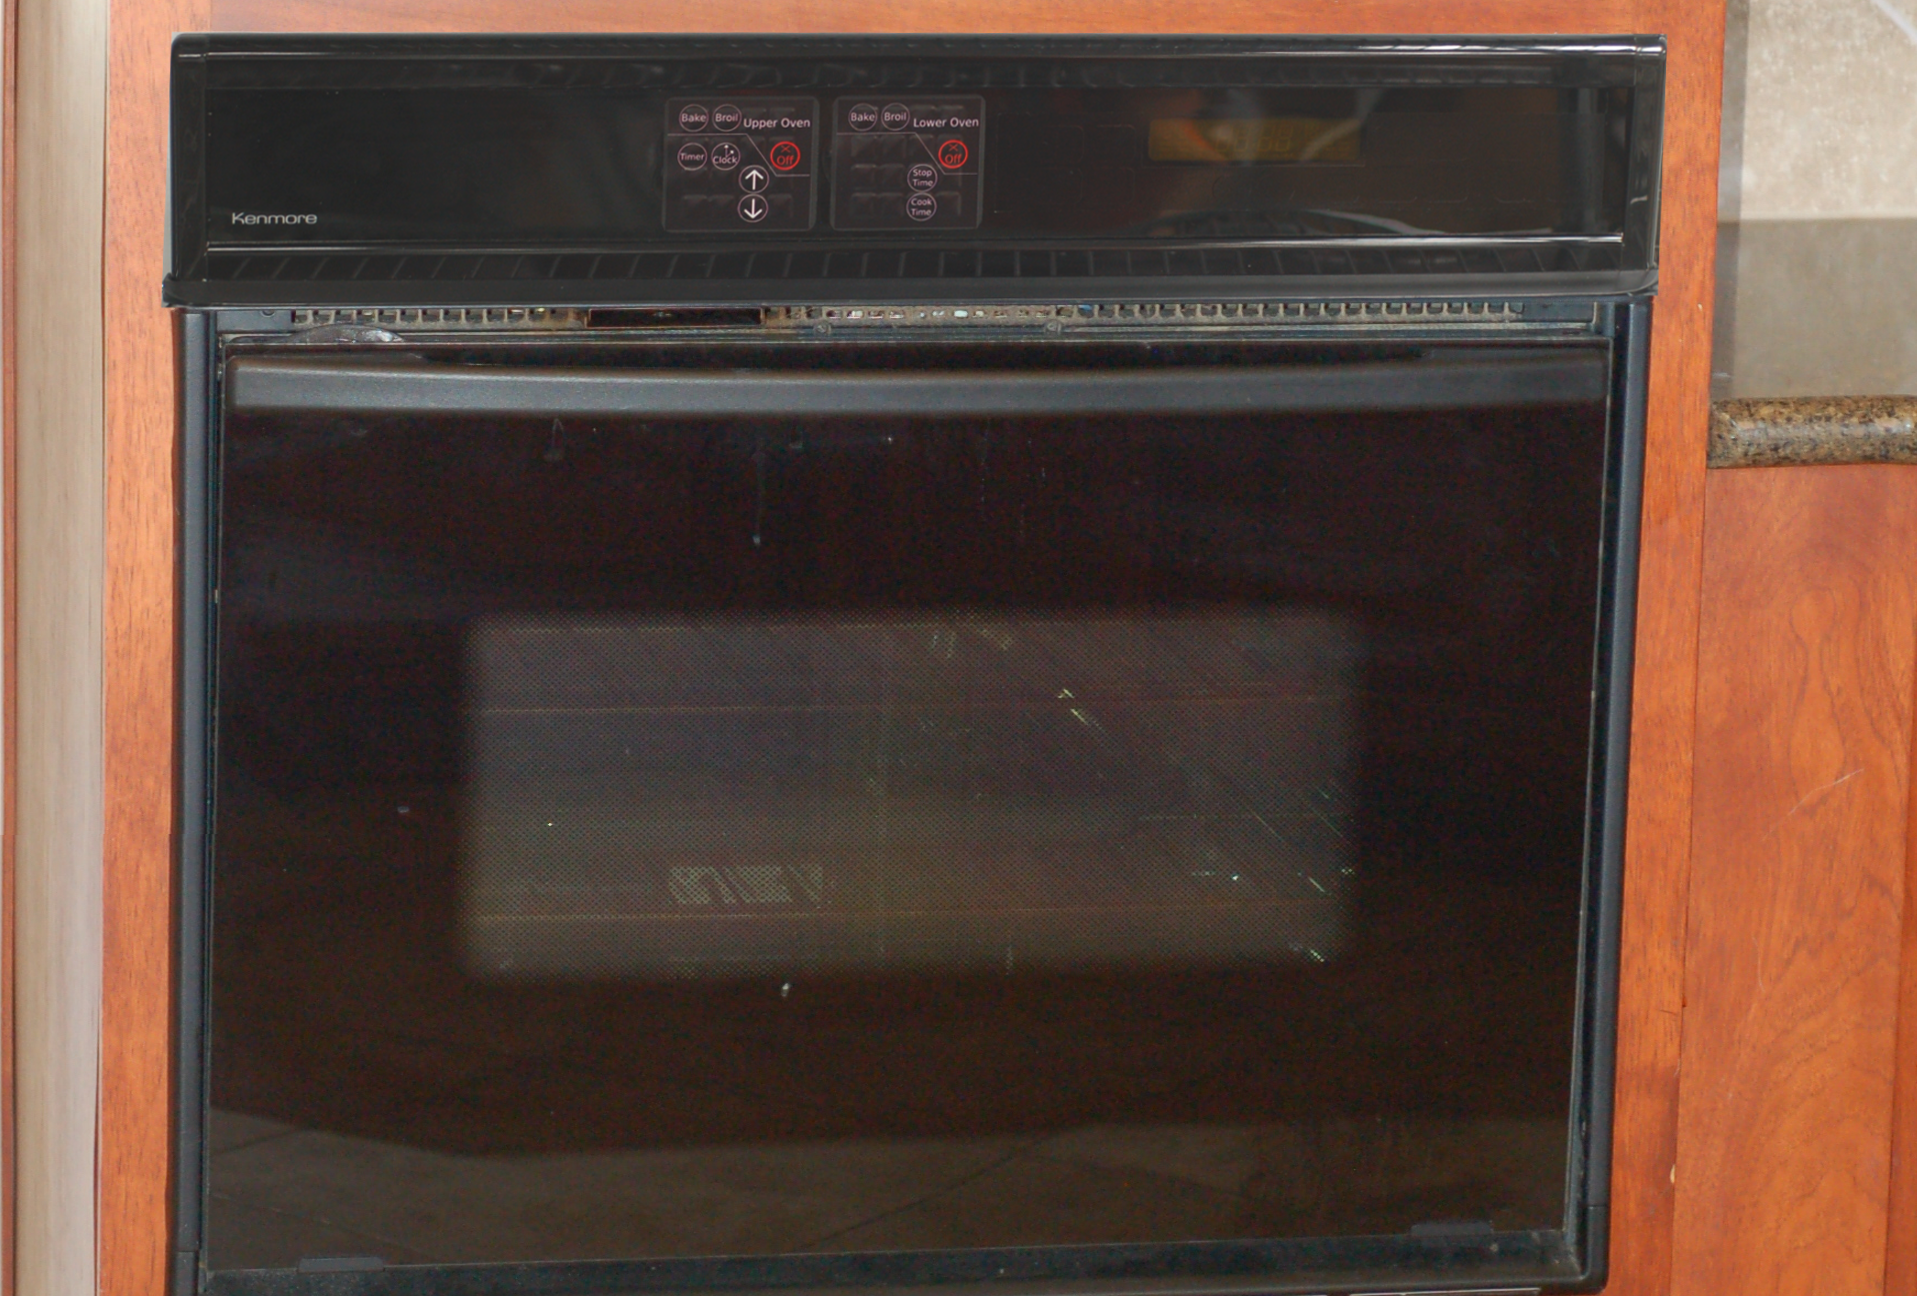 ge ovens applianceboards you send us the touchpad and we can modify like this one white black